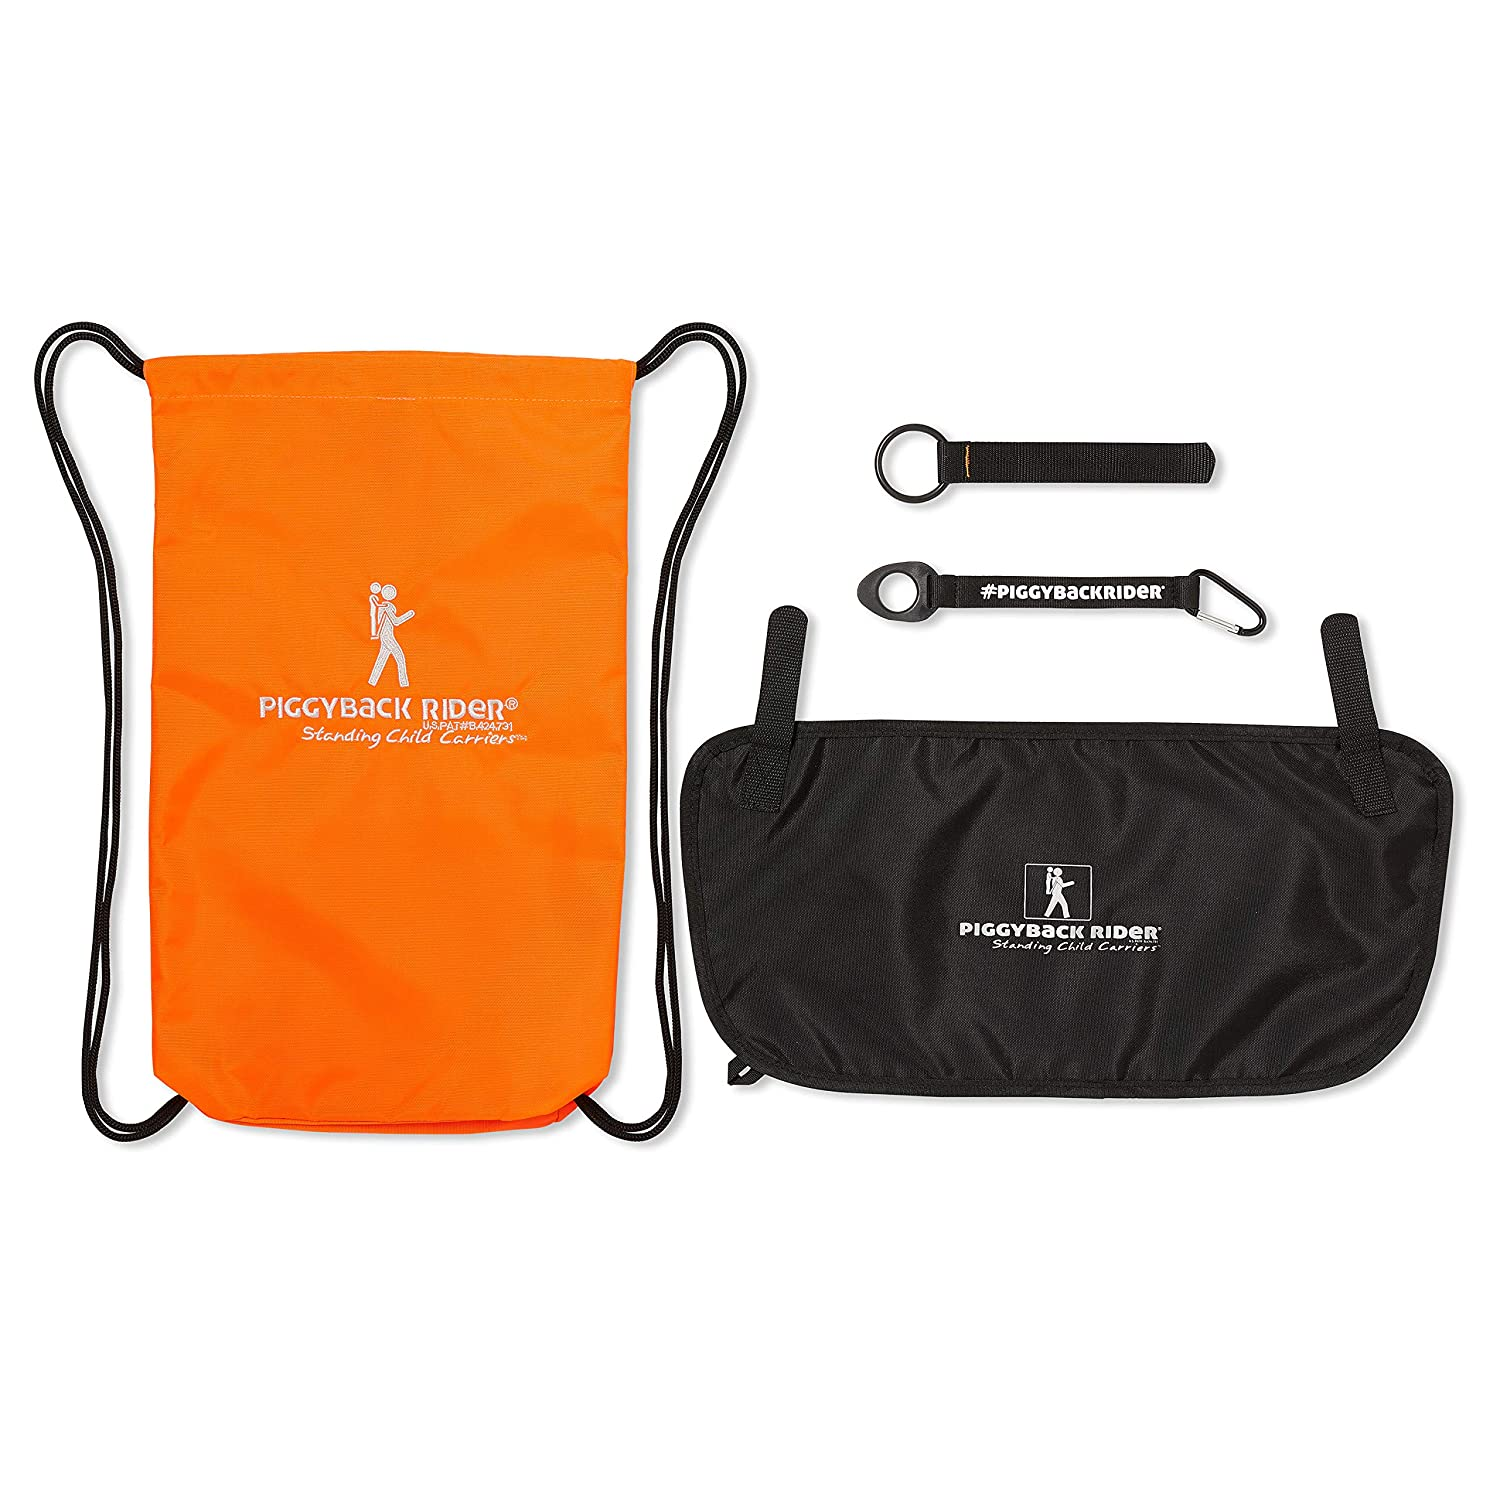 24fc47bfb4a Amazon.com   Piggyback Rider ACCESSORY PACK  3 (Orange) Carry Bag ...